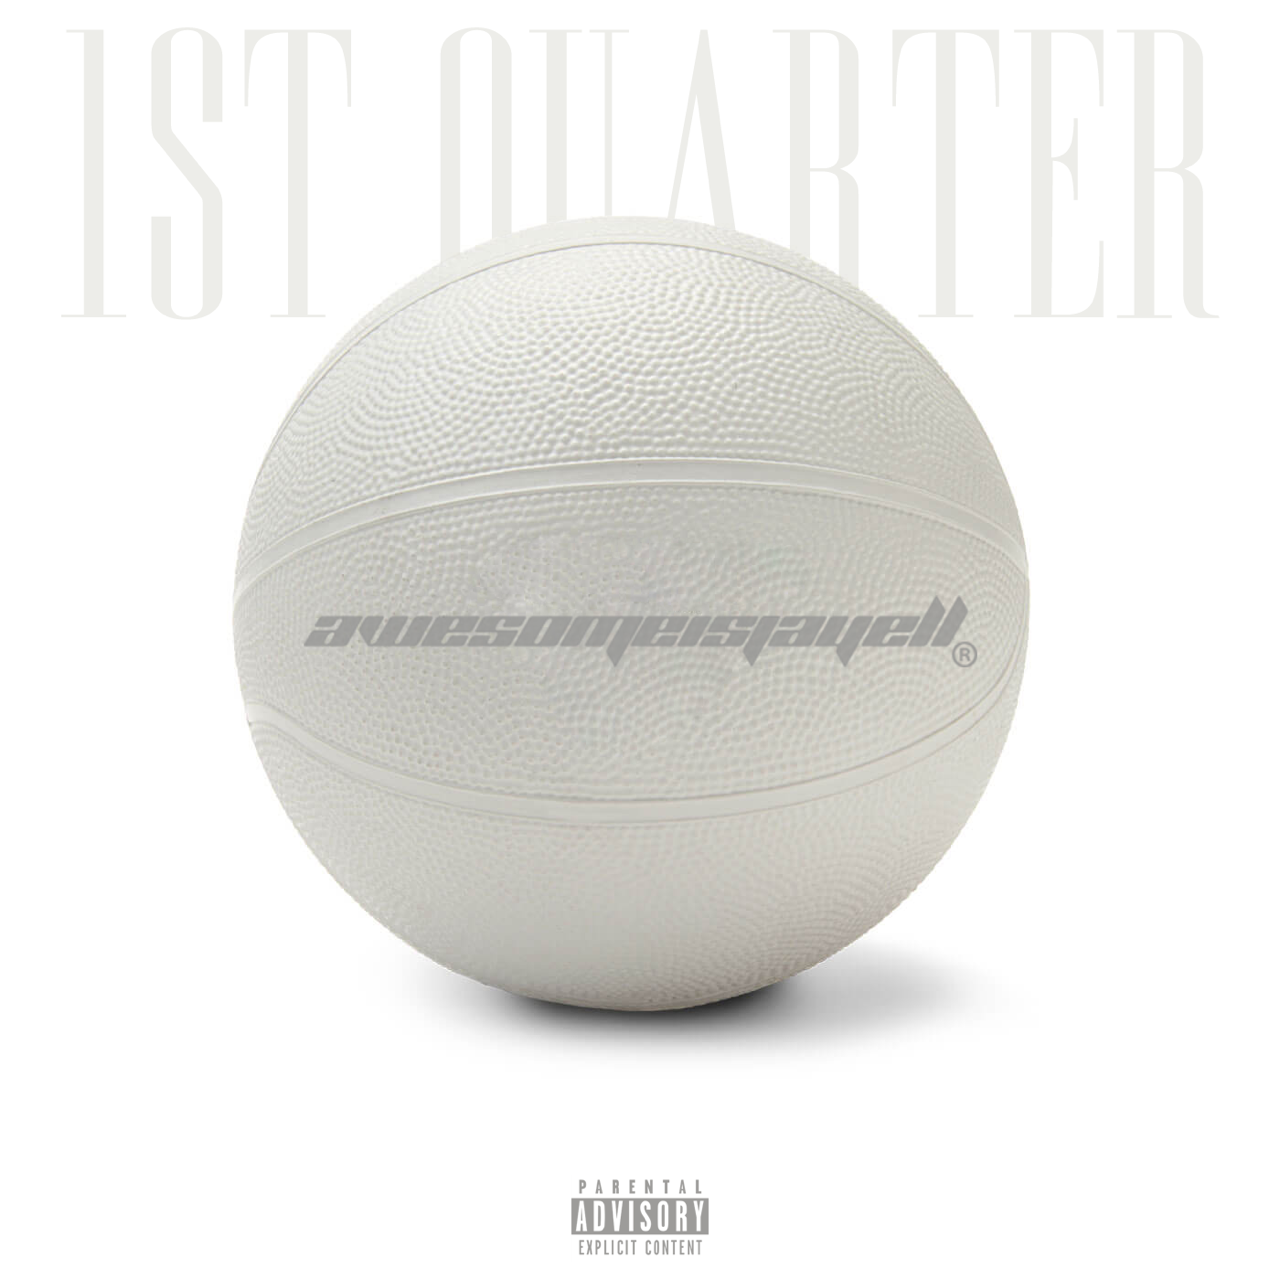 1ST QUARTER COVER ART.png